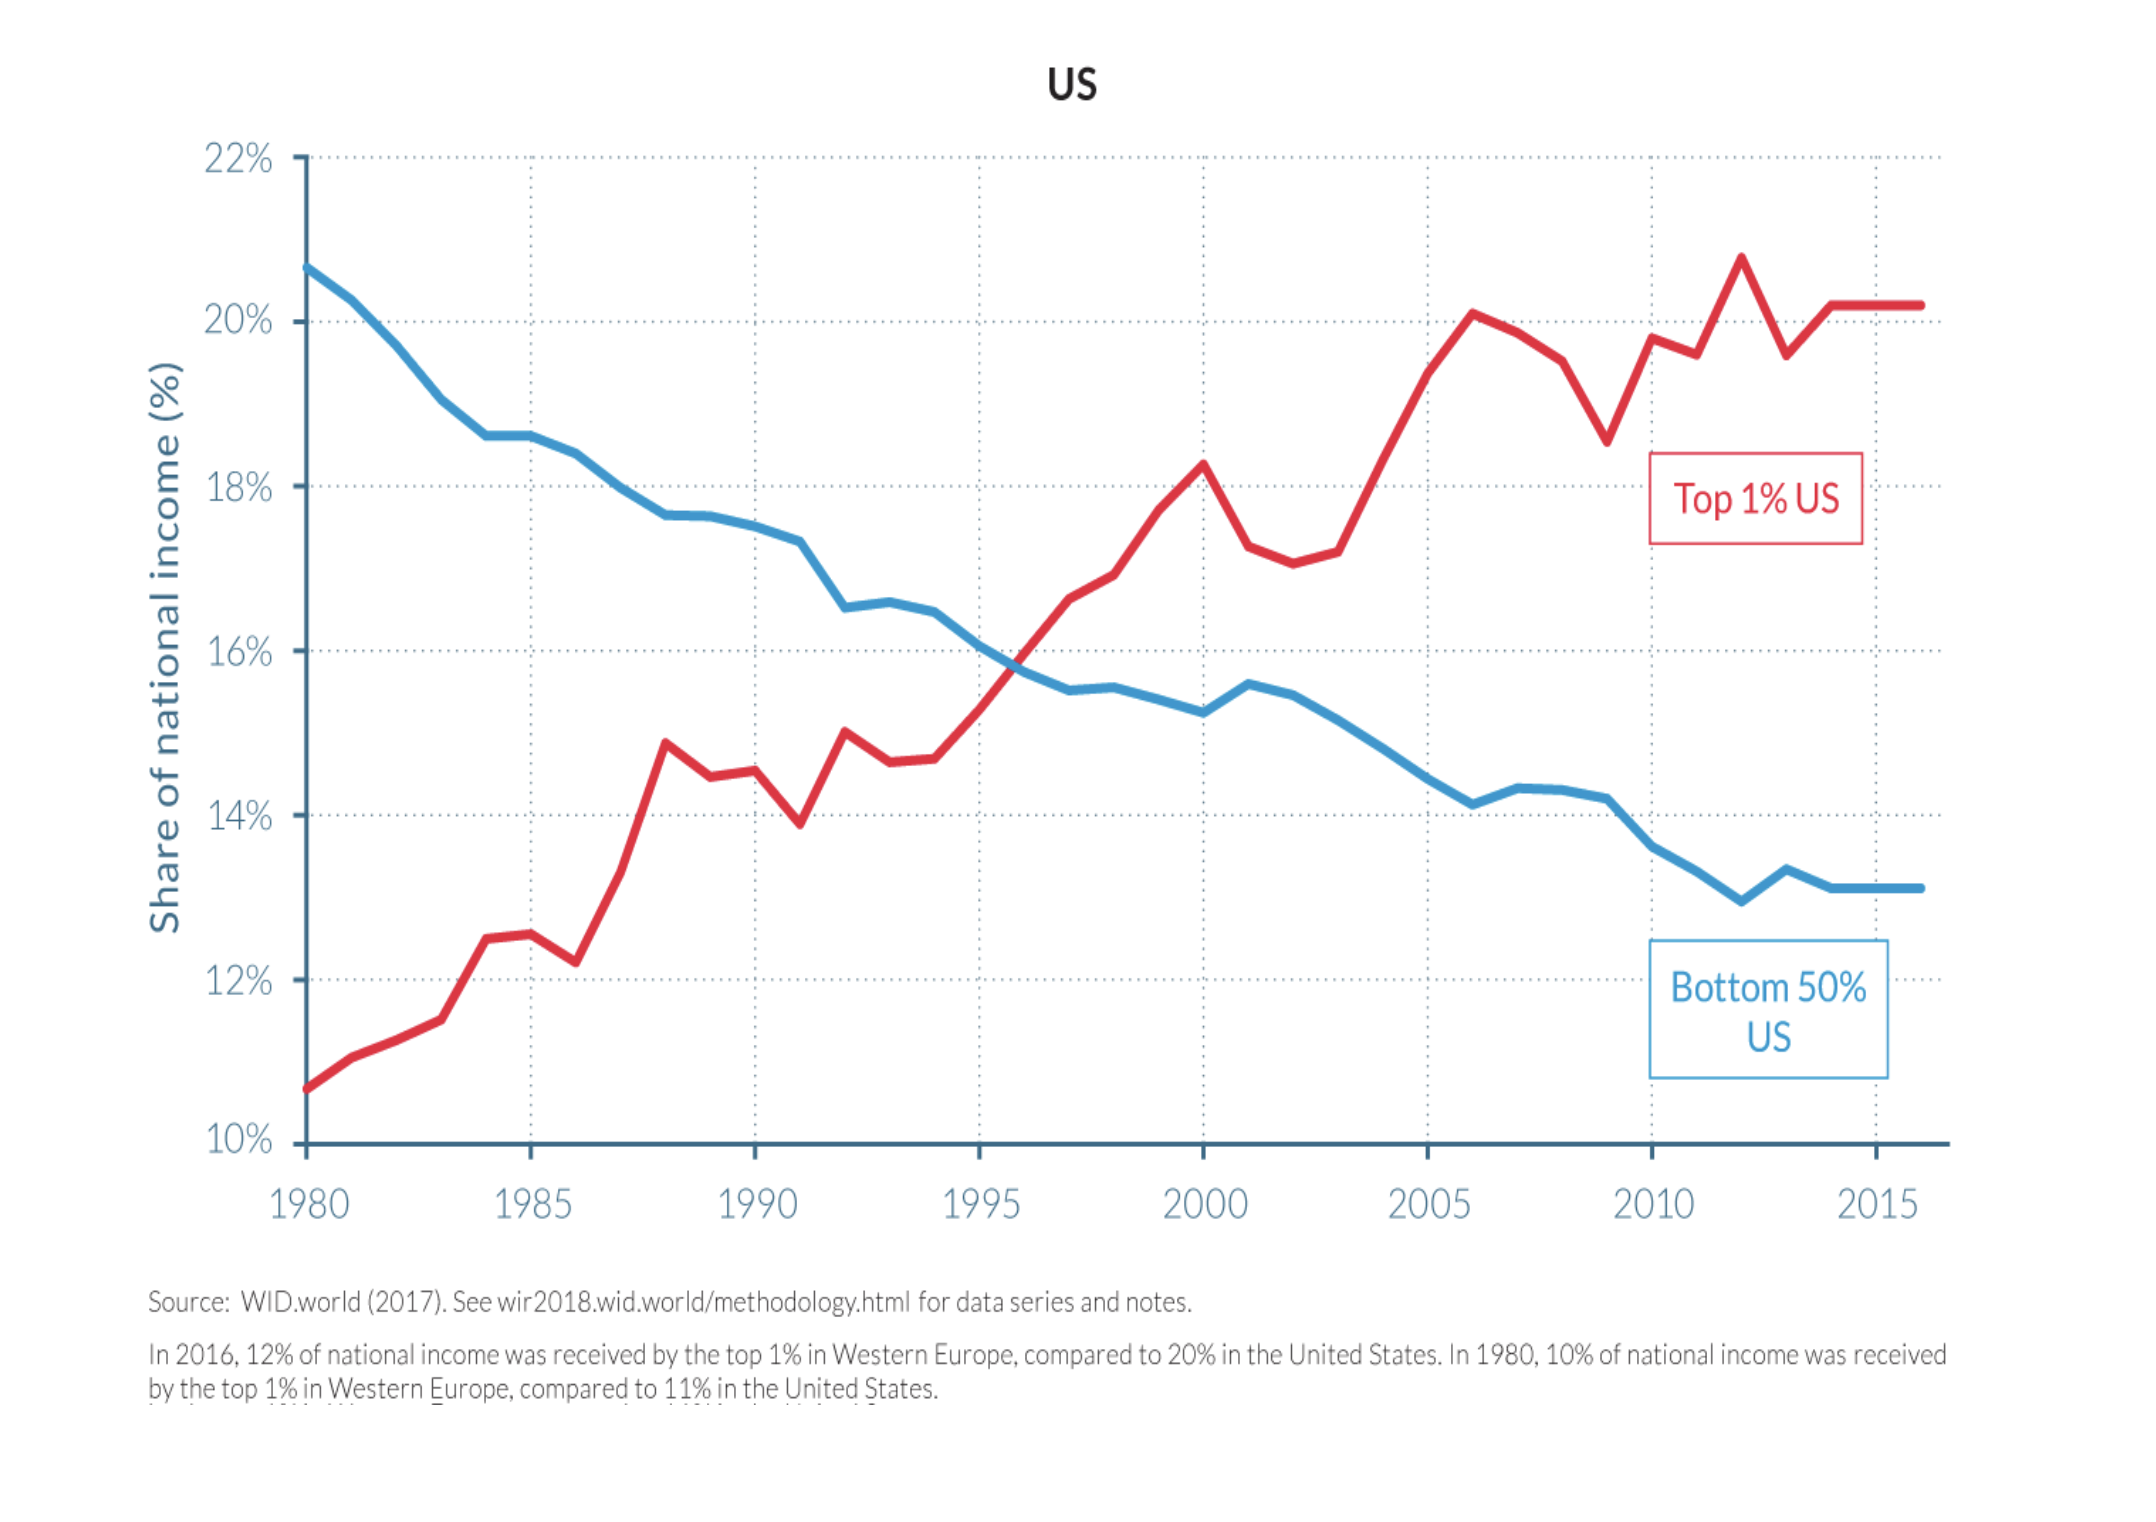 Wealth inequality in the US has grown sharply over the past few decades